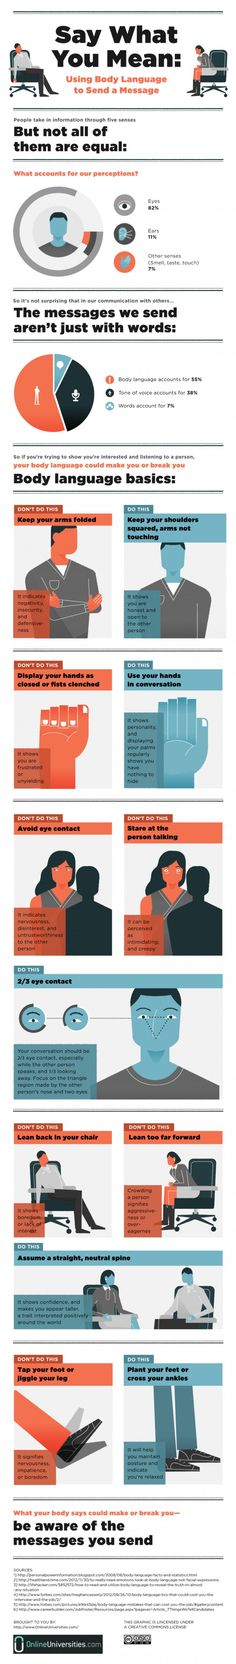 How body language is used to communicate messages non verbally and important tips to follow.